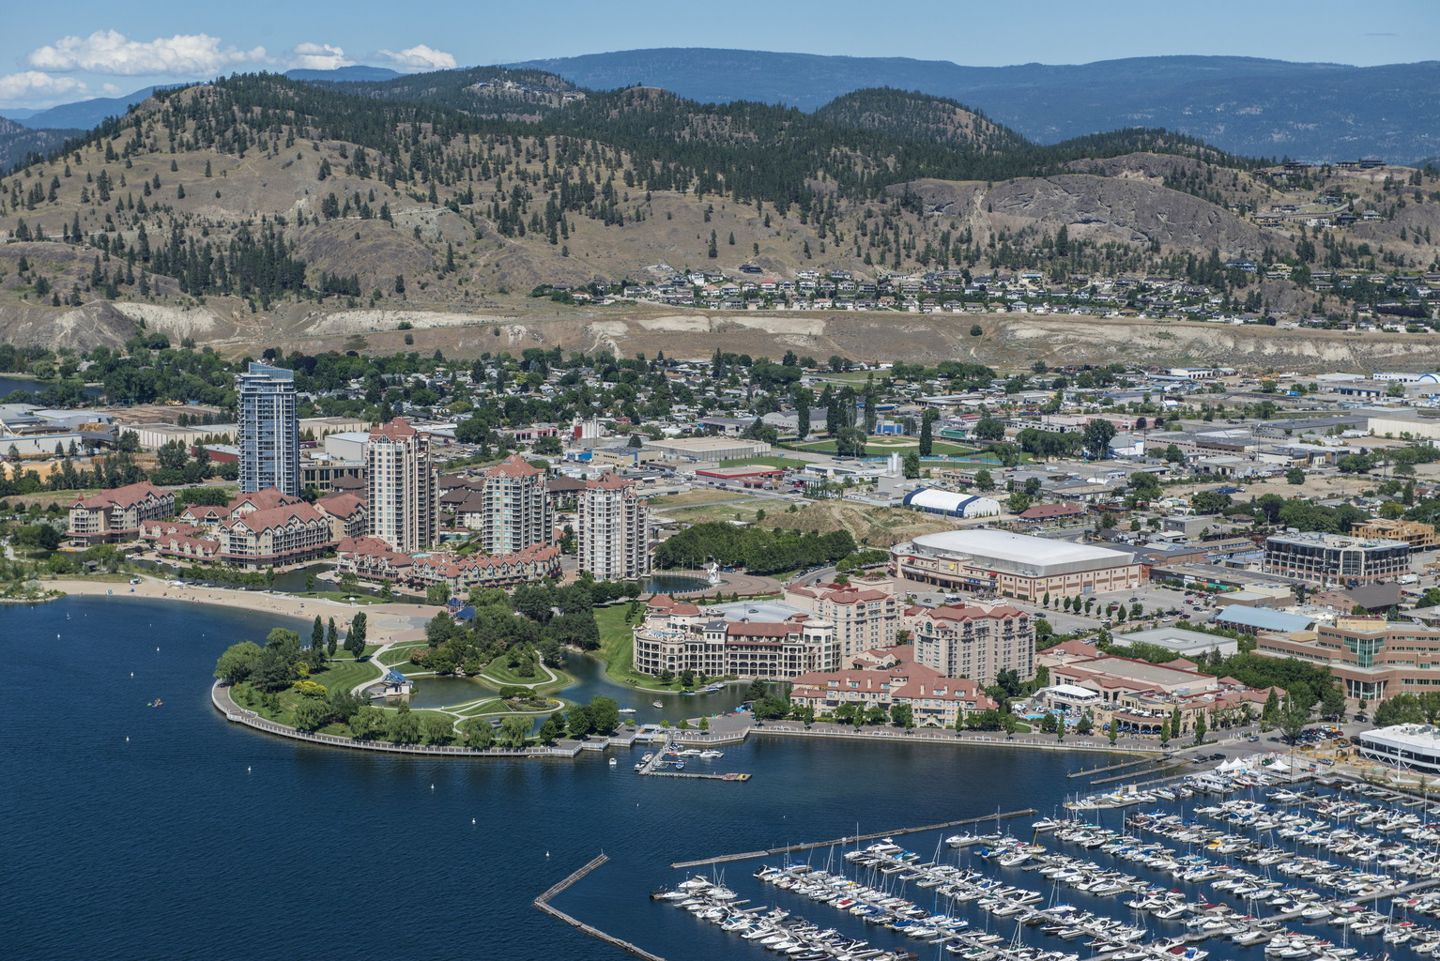 Airial shot of Kelowna downtown